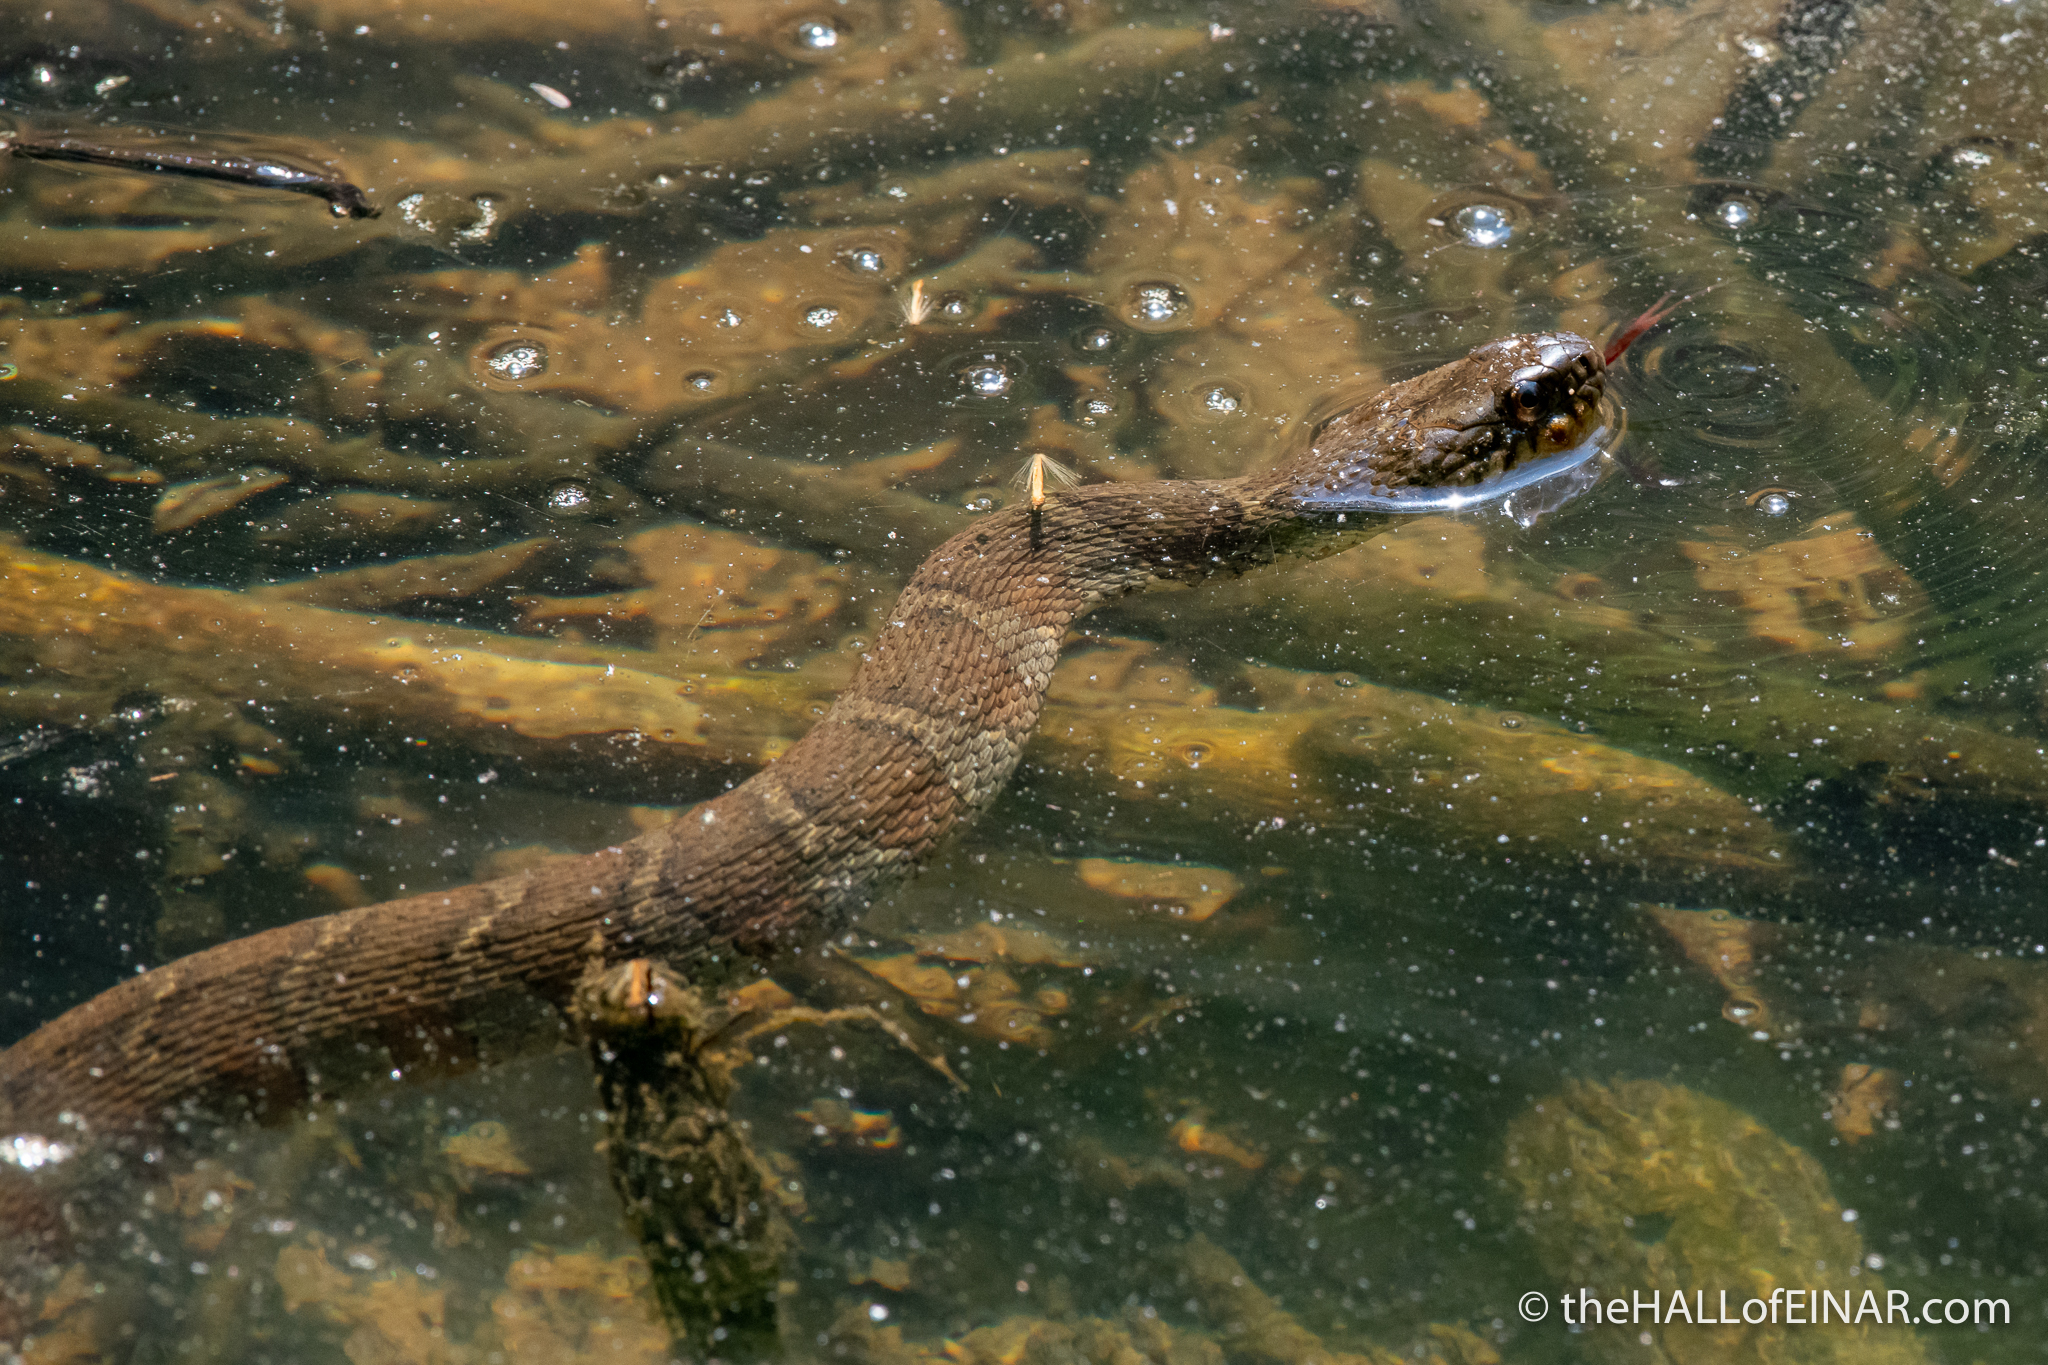 Northern Watersnake - The Hall of Einar - photograph (c) David Bailey (not the)